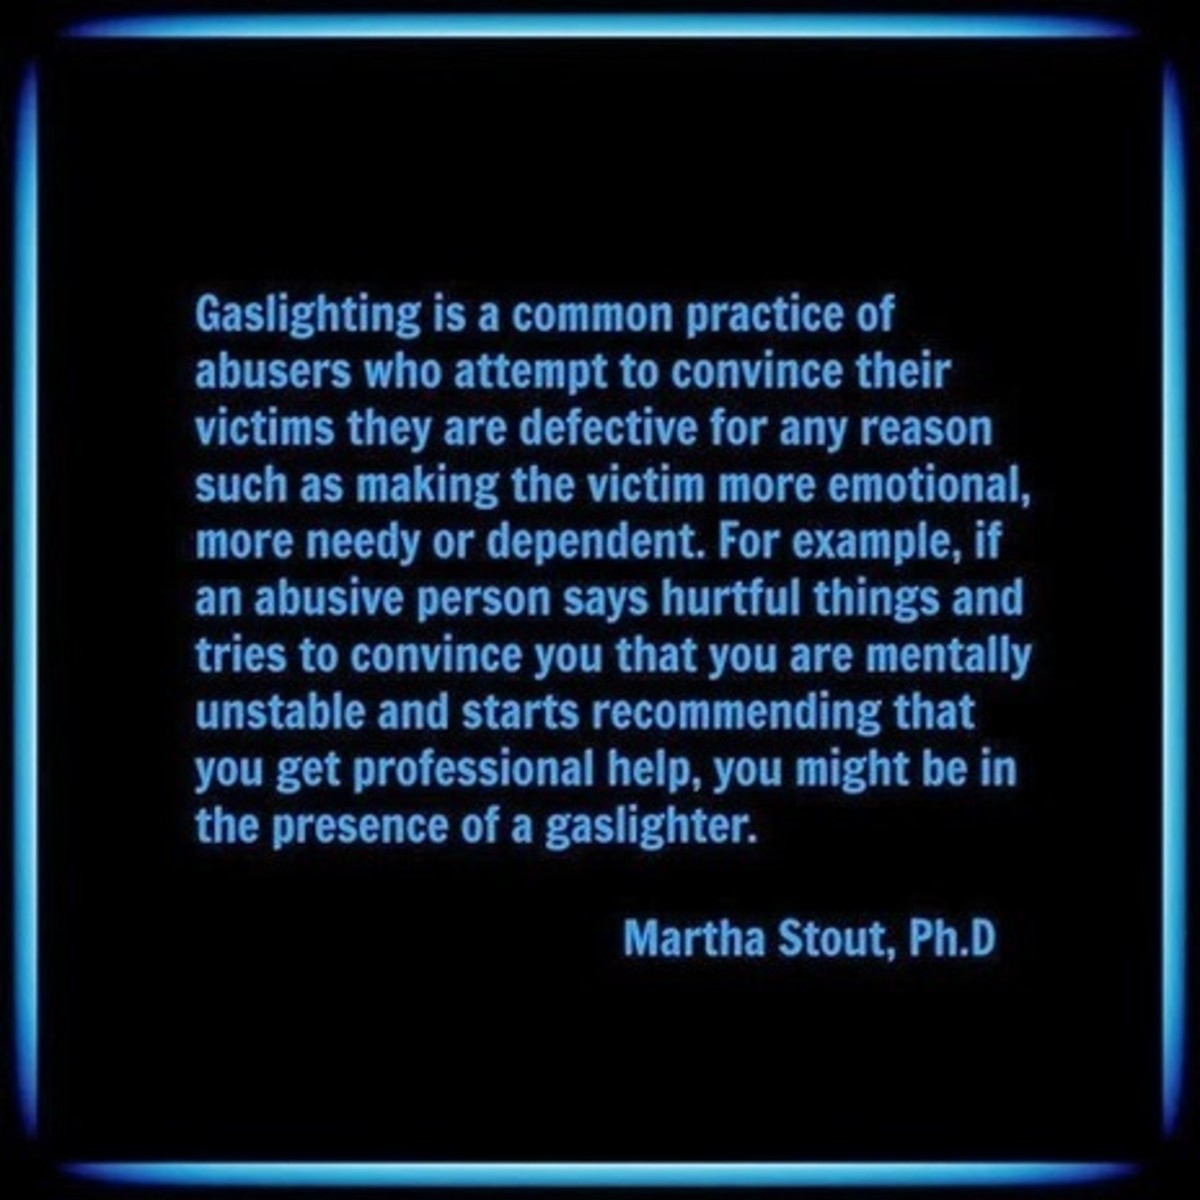 Gaslighting Definition by Martha Stout, Ph.D